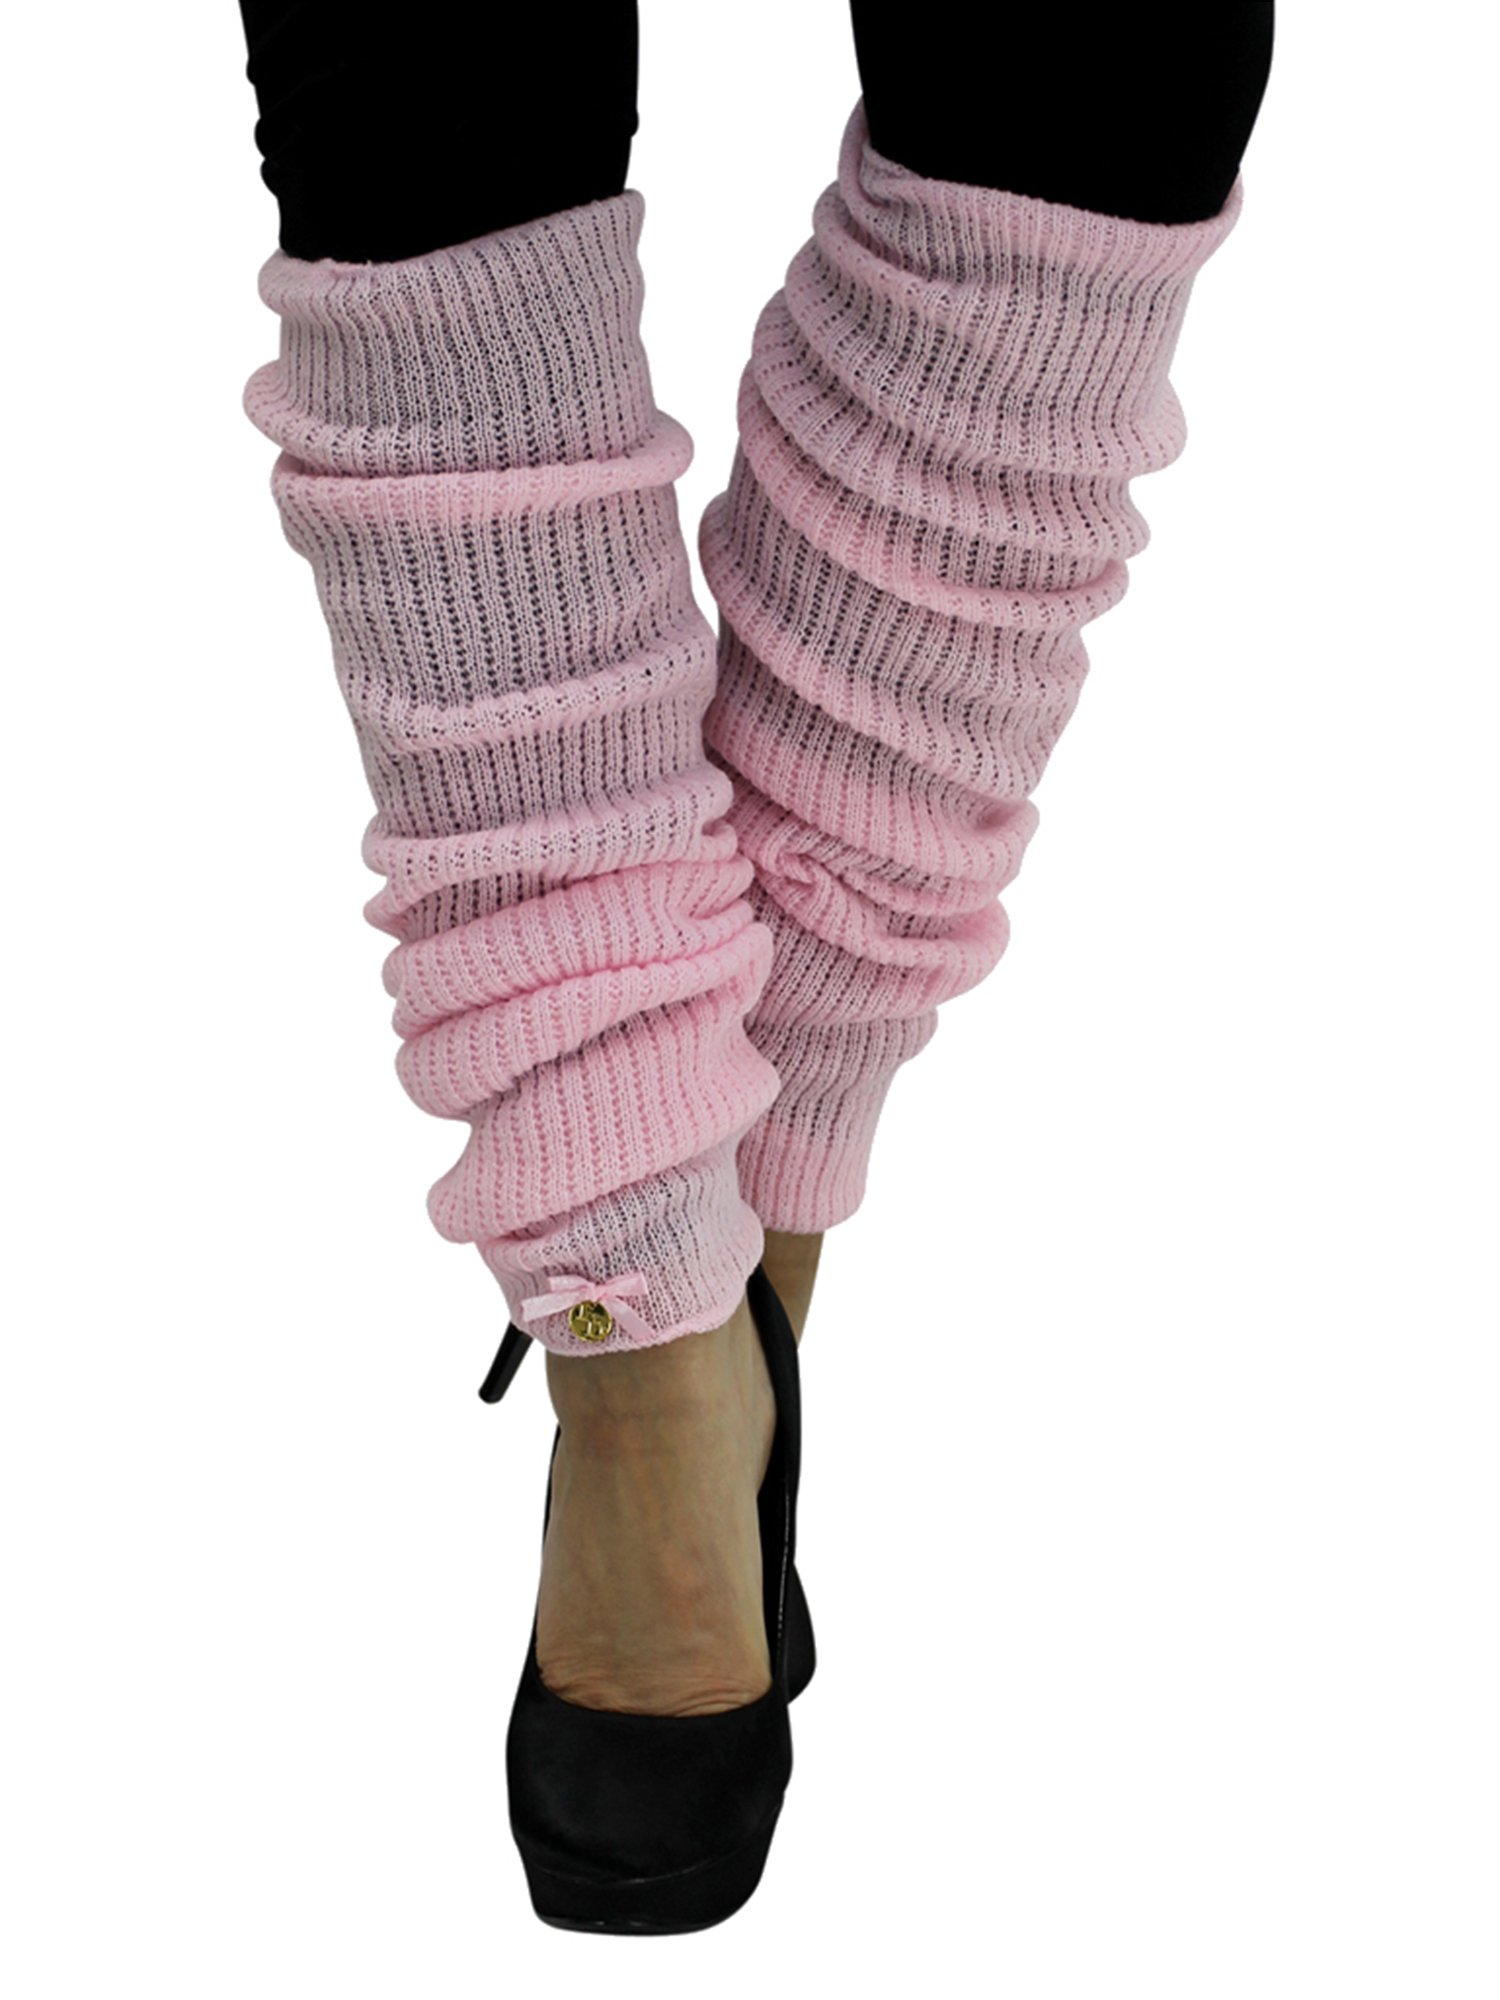 Pink Long Thick Knit Dance Leg Warmers by Luxury Divas (Image #1)